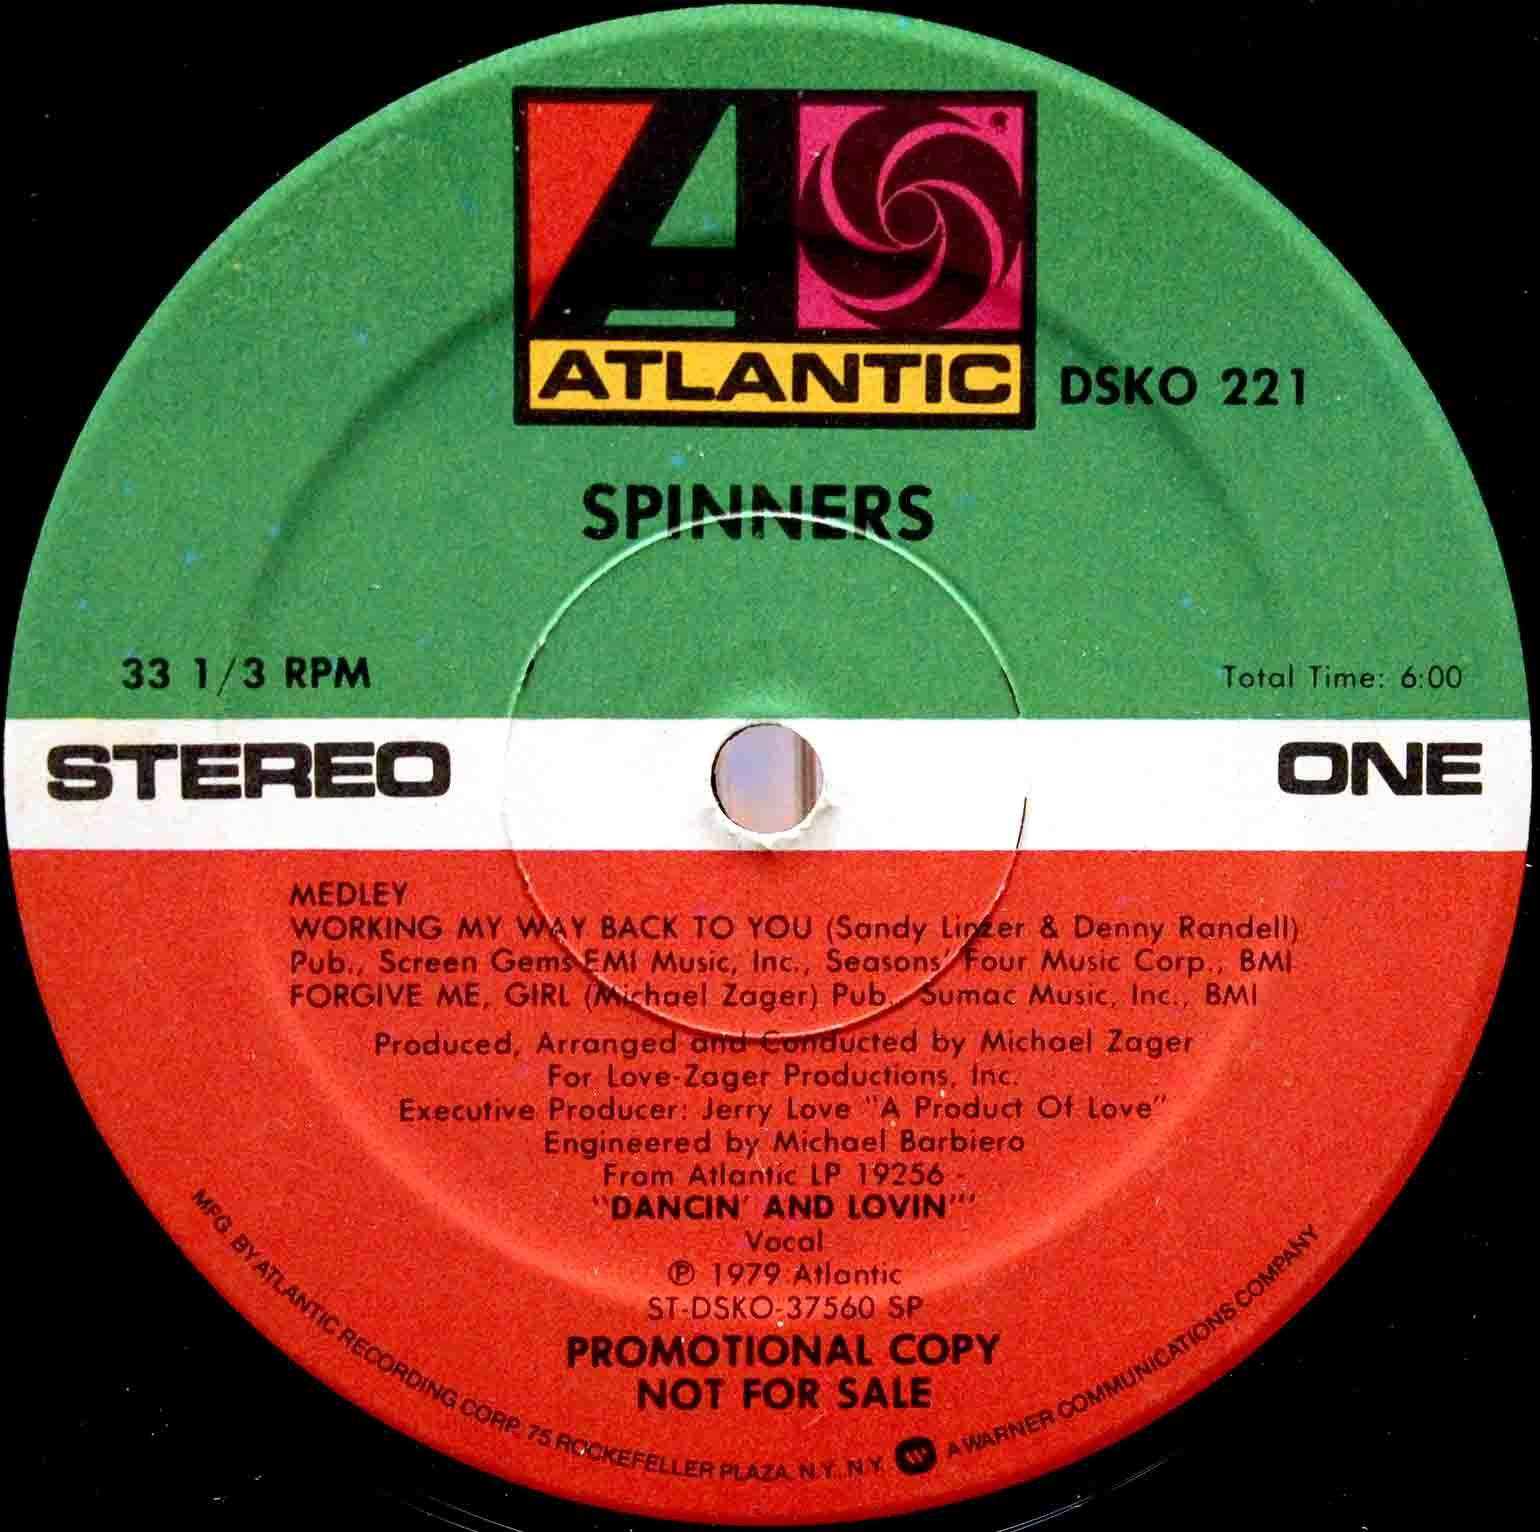 Spinners – Medley - Working My Way Back To You 03